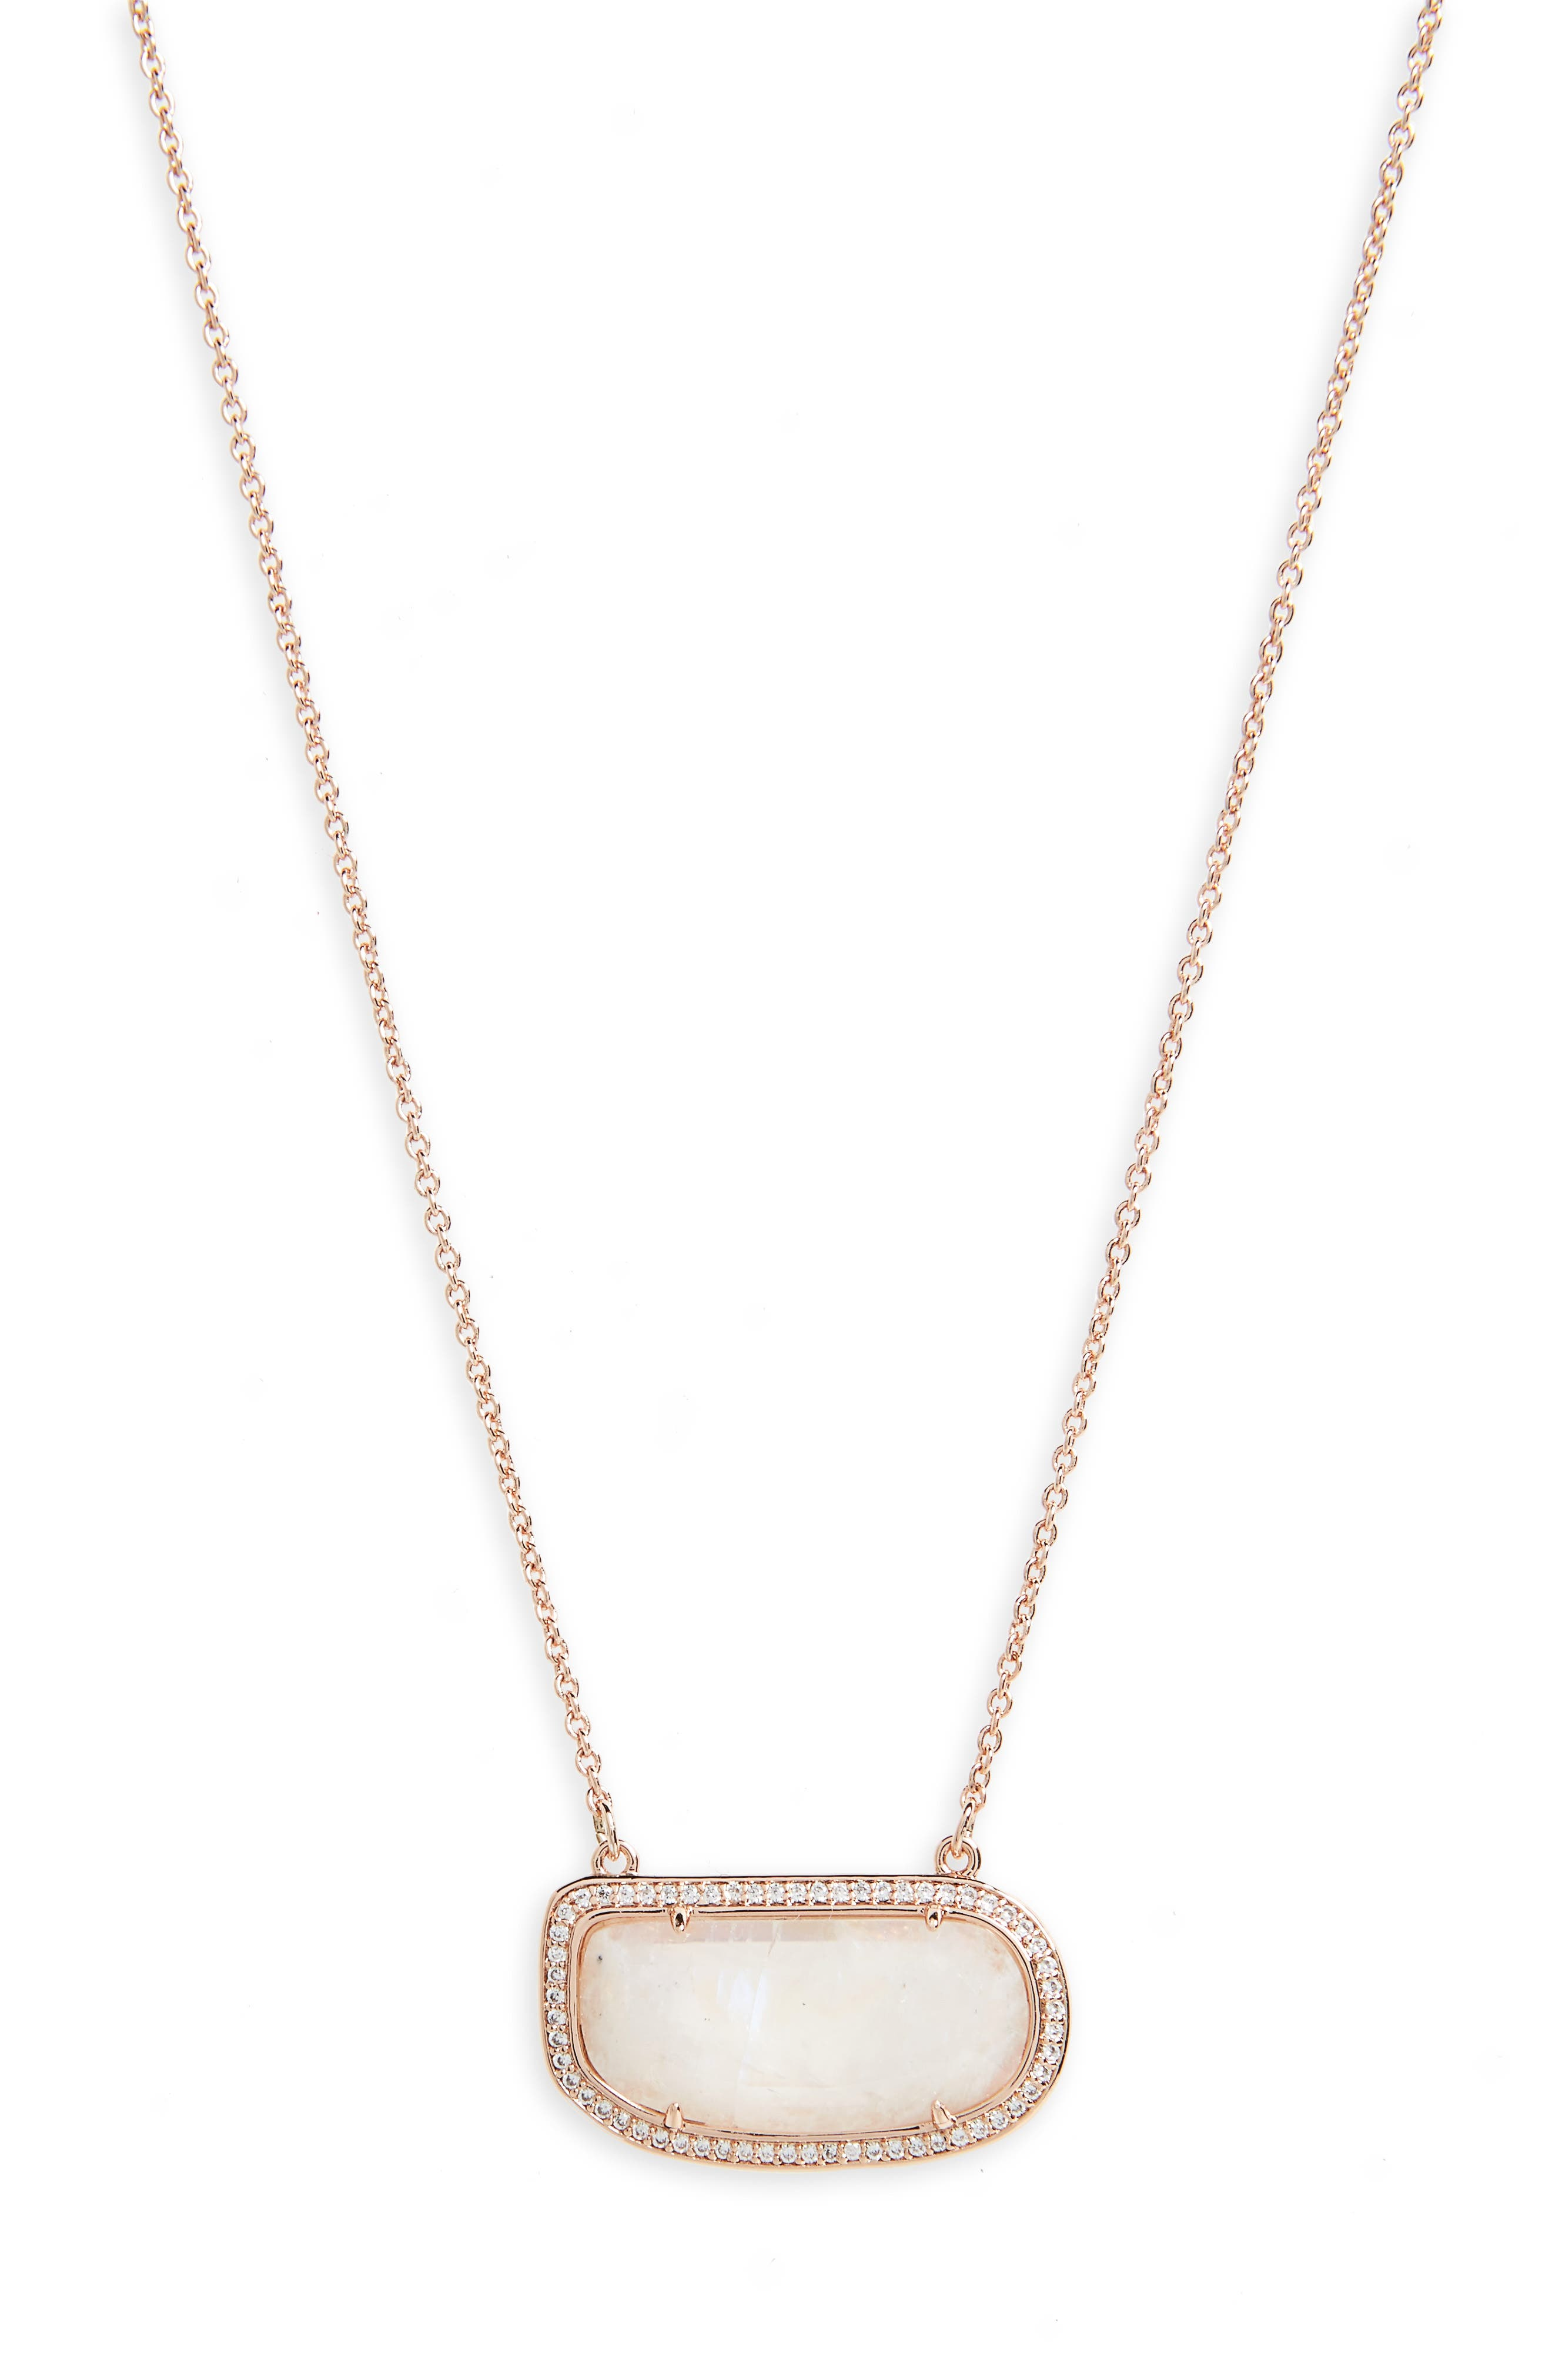 Moonstone Slice Necklace,                         Main,                         color, MOONSTONE/ ROSE GOLD